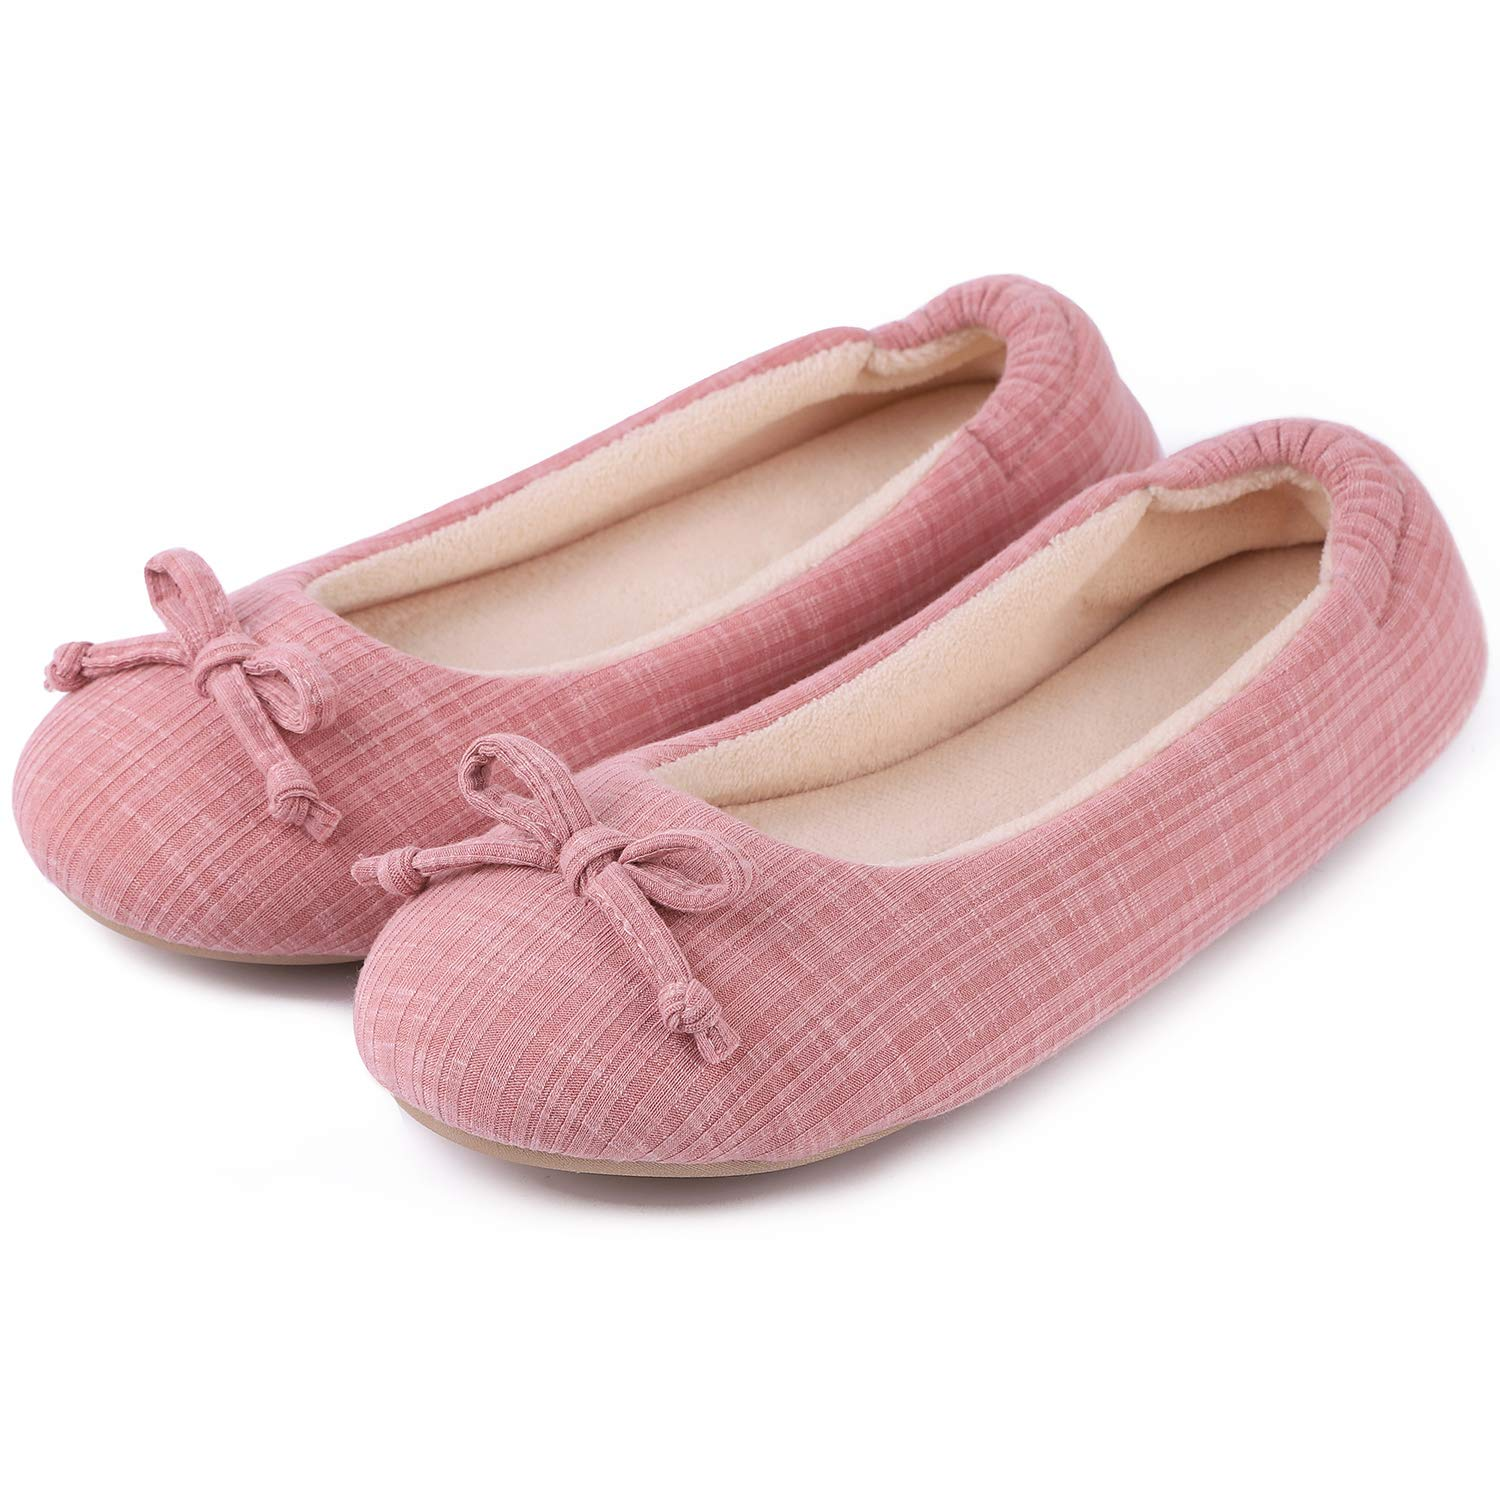 Cozy Niche Women's Comfort Stripe Knitted Ballerina Style Shoes, Memory Foam House Slippers with Coral Velvet Lining (7-8 B(M) US, Pink)